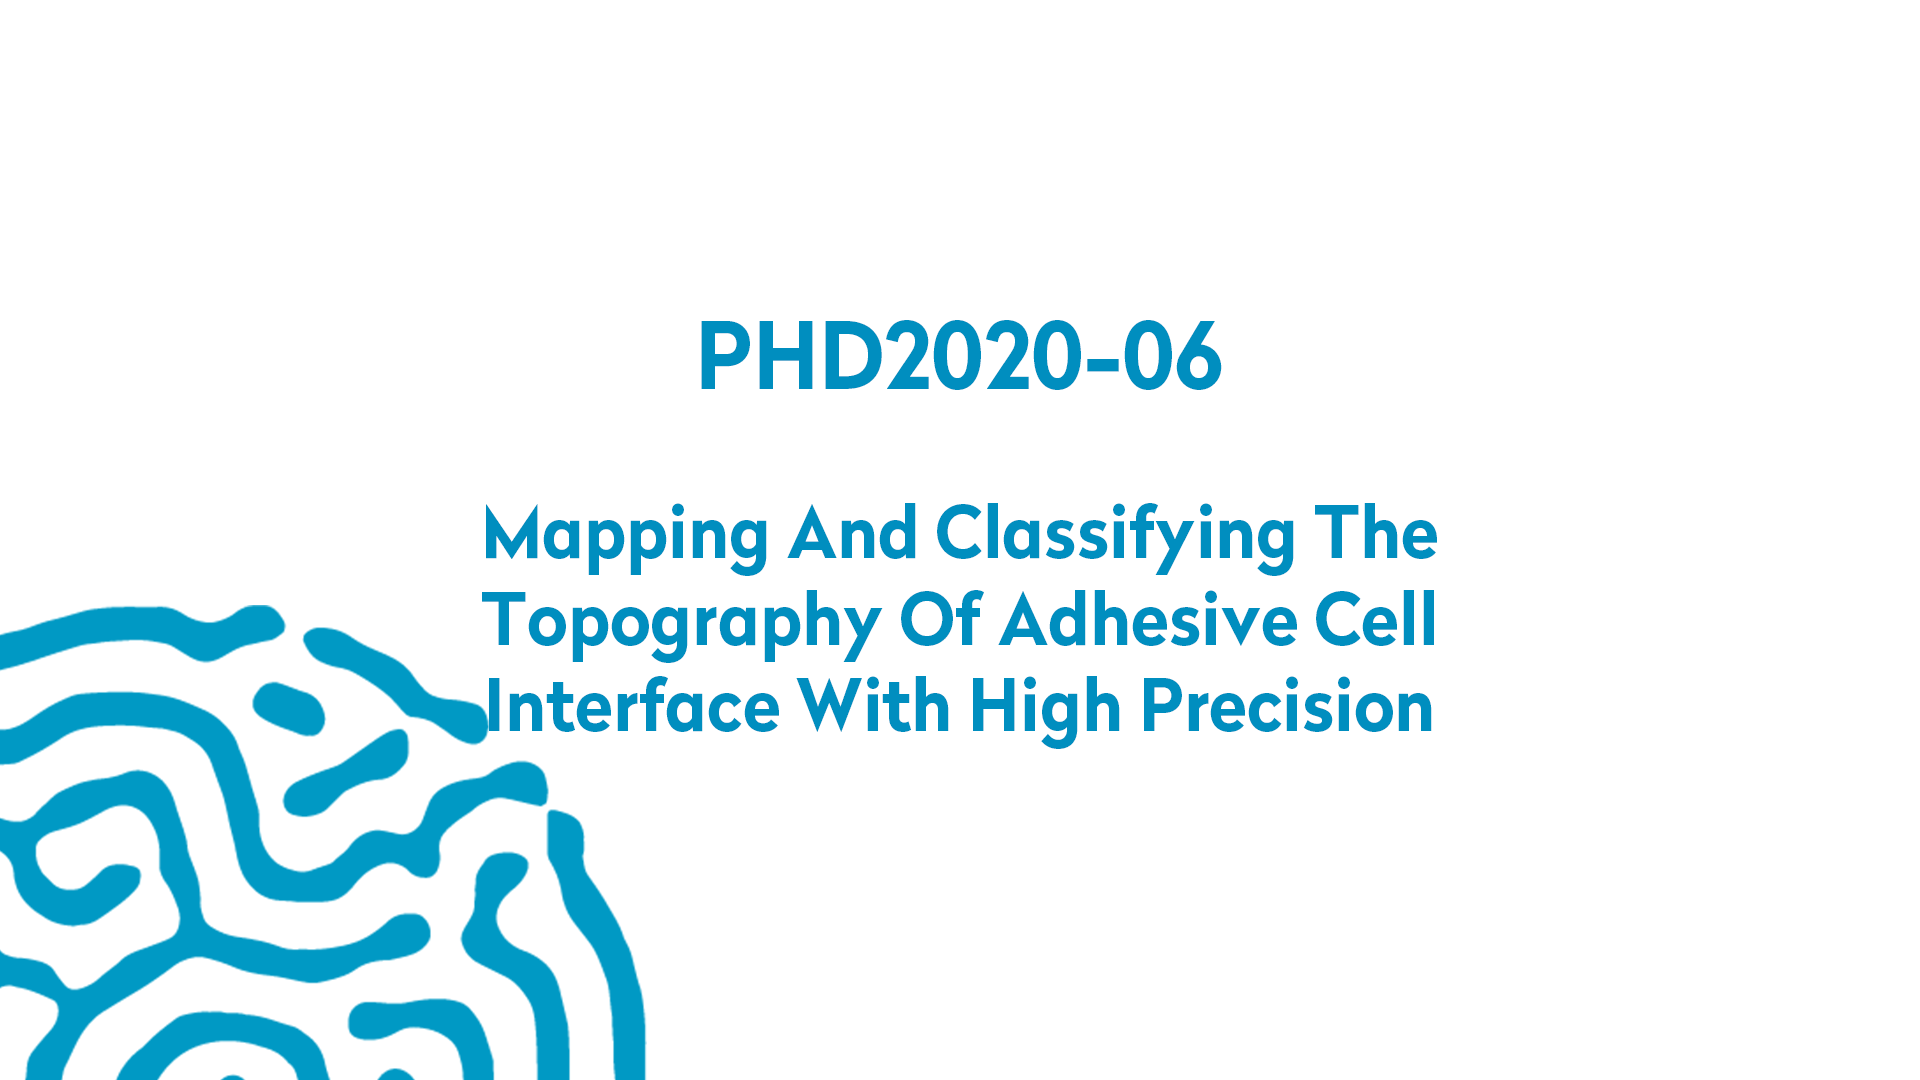 PHD2020-06 | Mapping and classifying the topography of adhesive cell interface with high precision